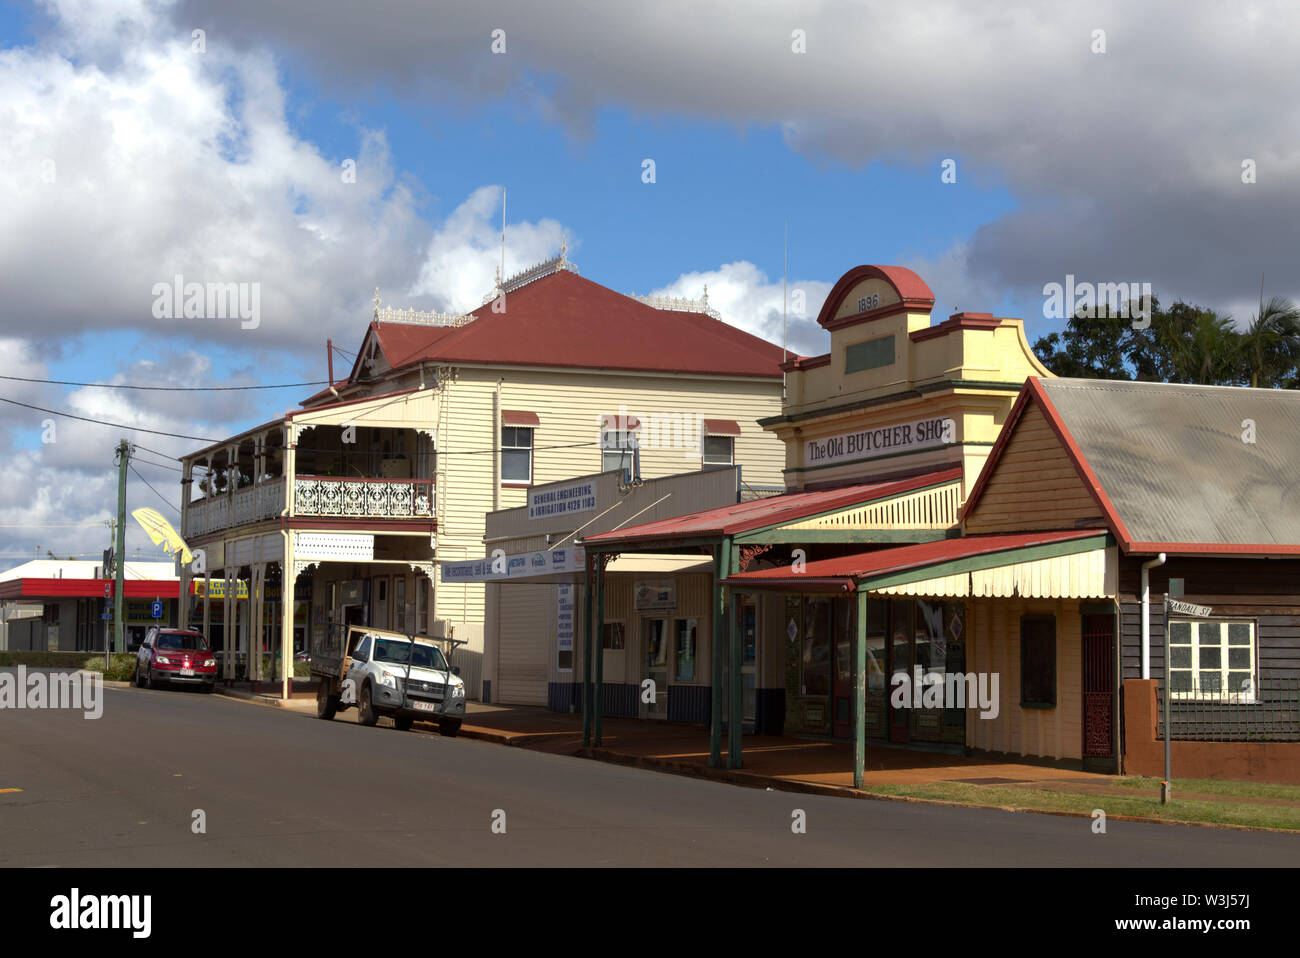 Historic streetscape of the olde butcher shop and Federal Hotel on North Street Childers Queensland Australia - Stock Image